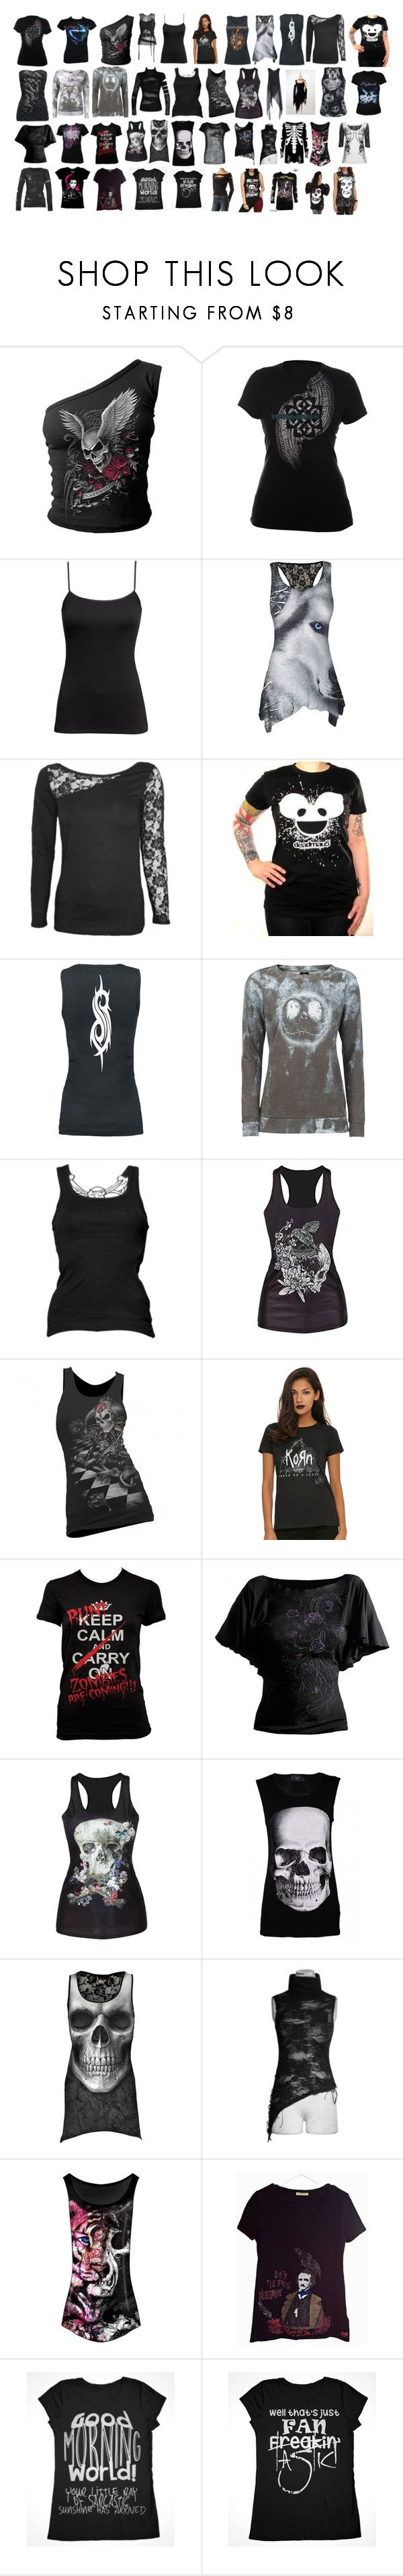 """""""Lanya's Shirts #1"""" by switchback13 ❤ liked on Polyvore featuring Ascension, H&M, Roland Mouret, Whitby, Hot Topic, AX Paris, Abbey Dawn, Killstar, Poizen Industries and Ed Hardy"""